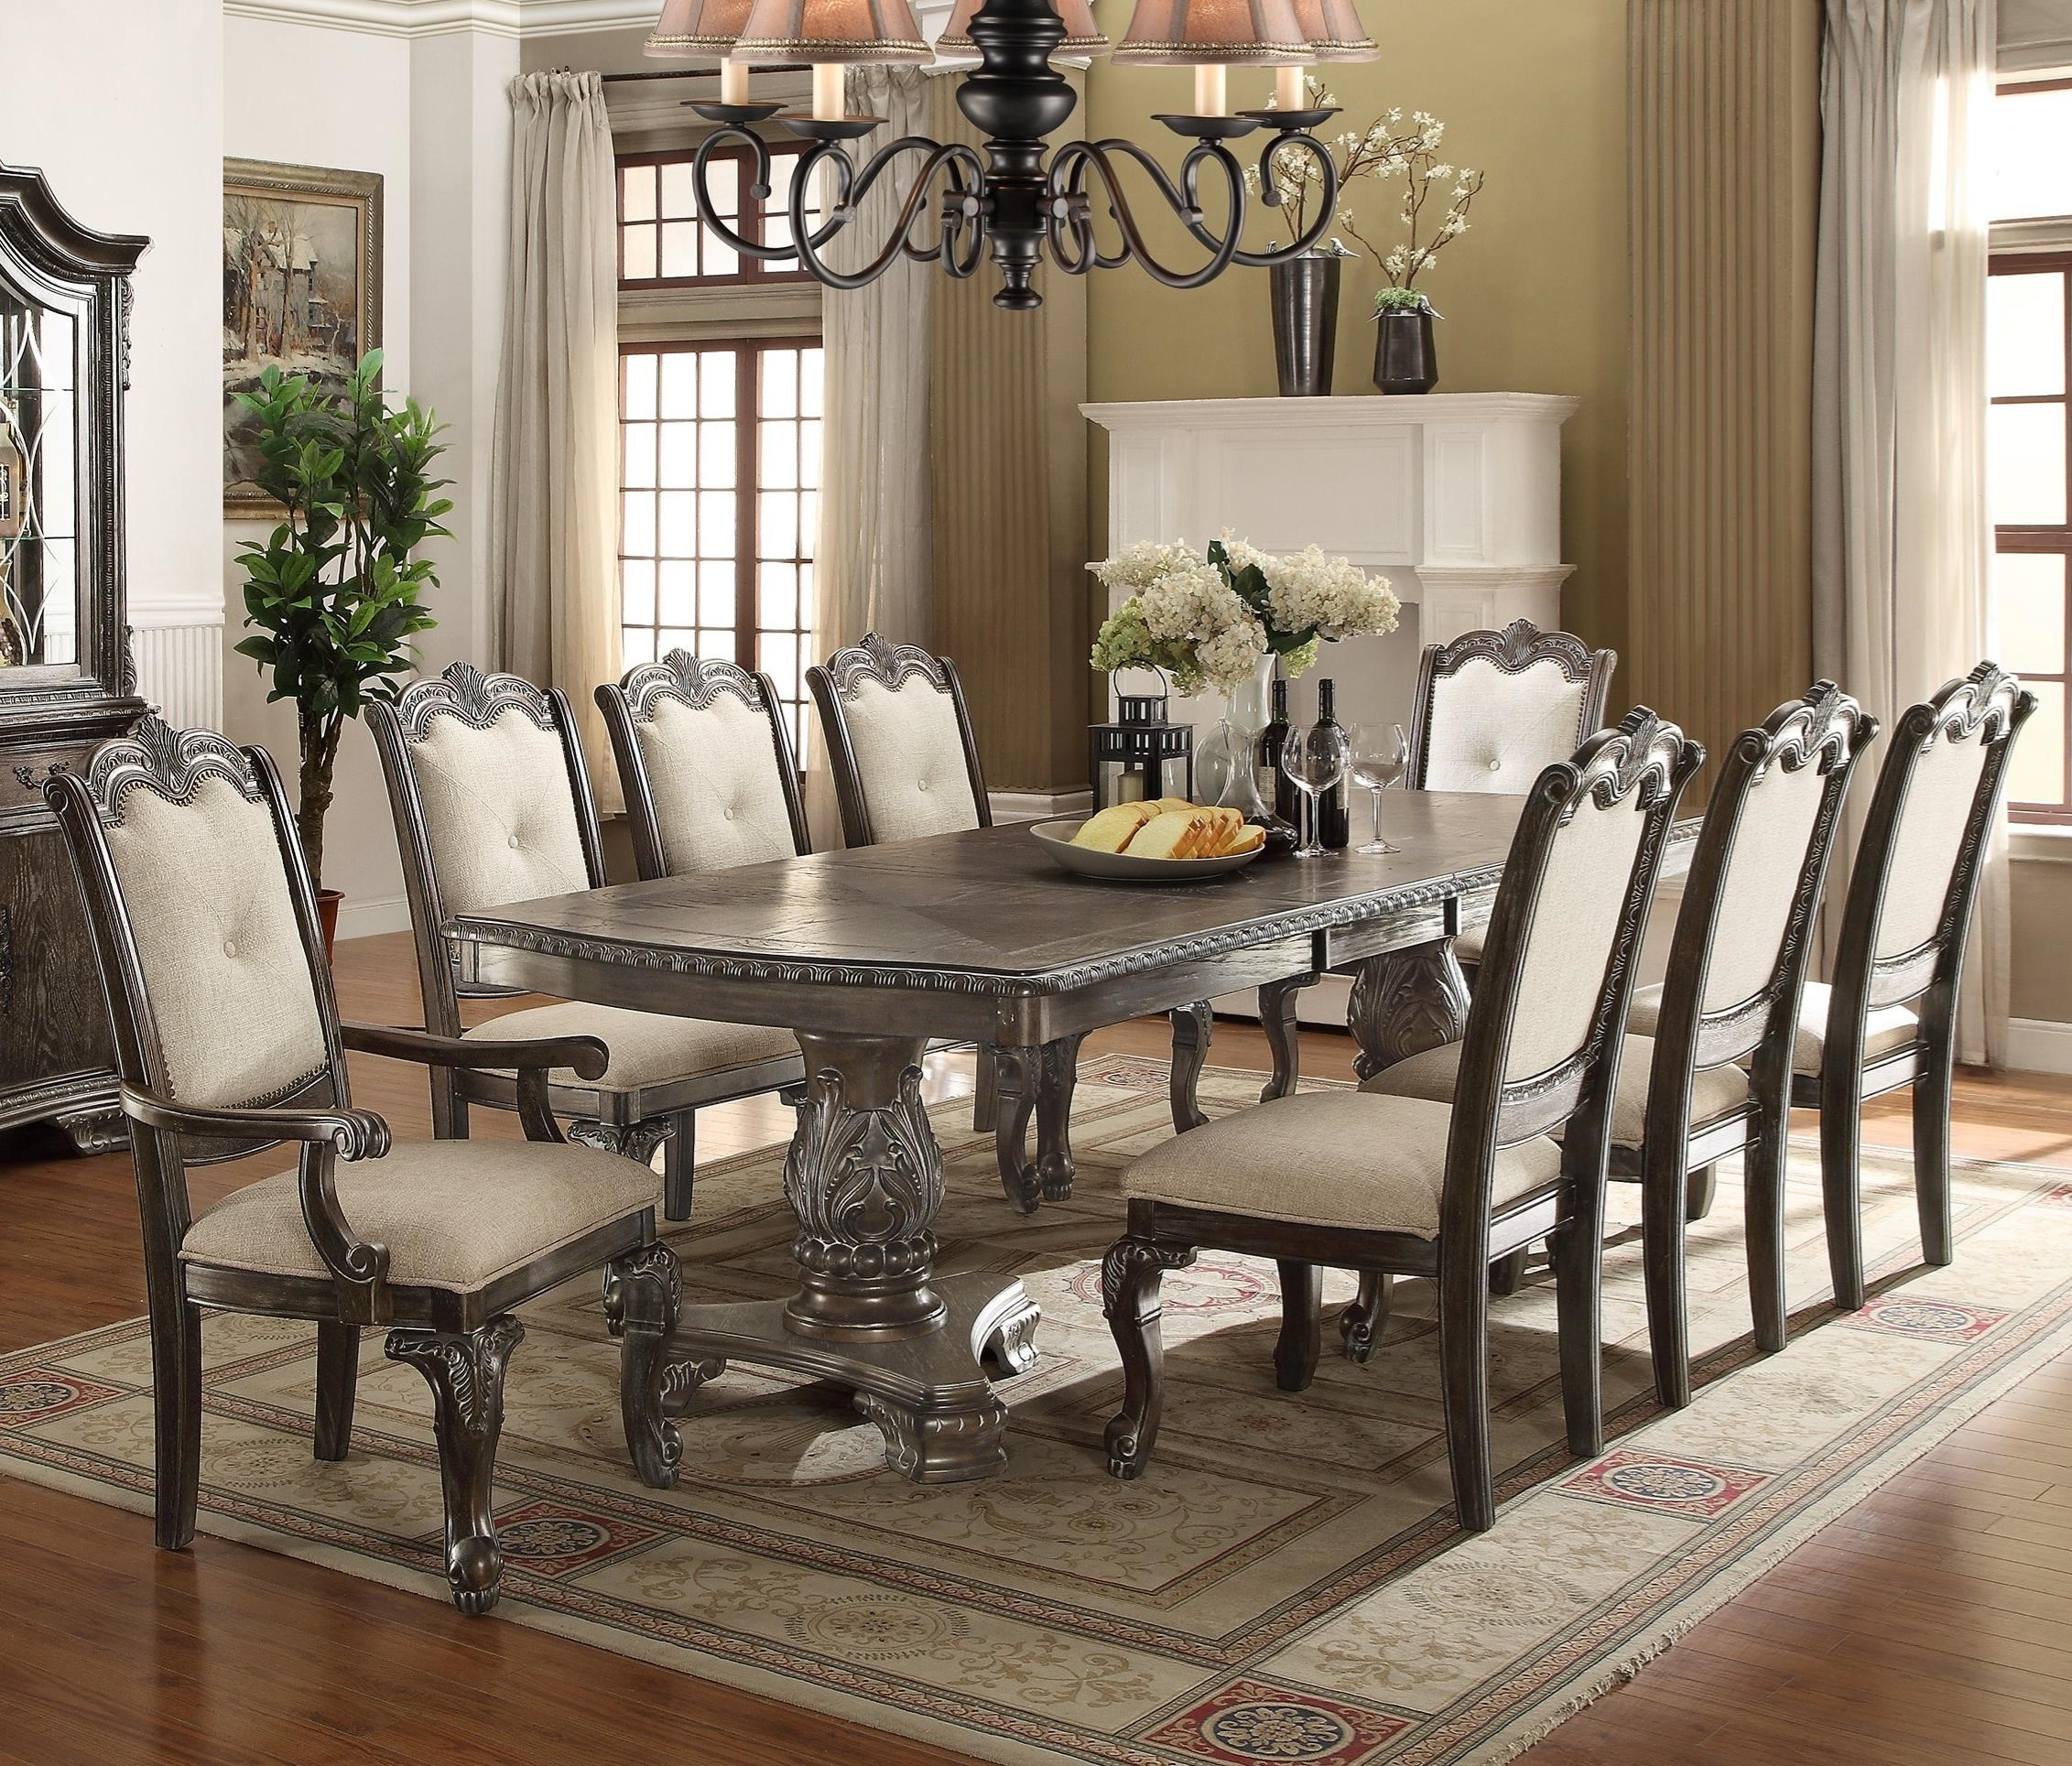 Kiera Dining Table Set by Crown Mark at Northeast Factory Direct